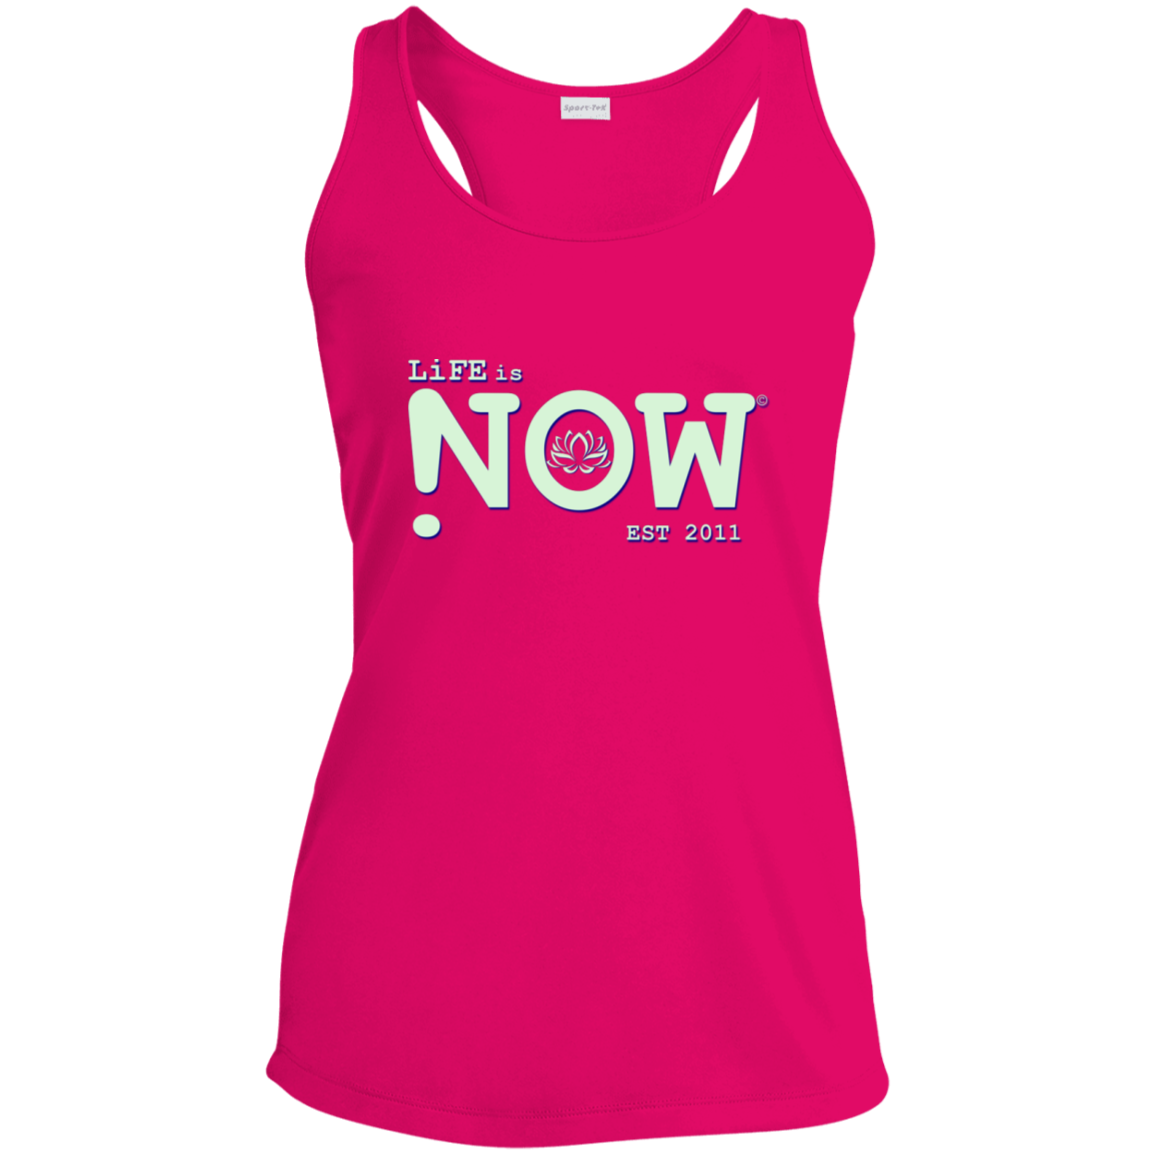 LiFE is NOW Lotus Ladies' Racerback Moisture Wicking Tank